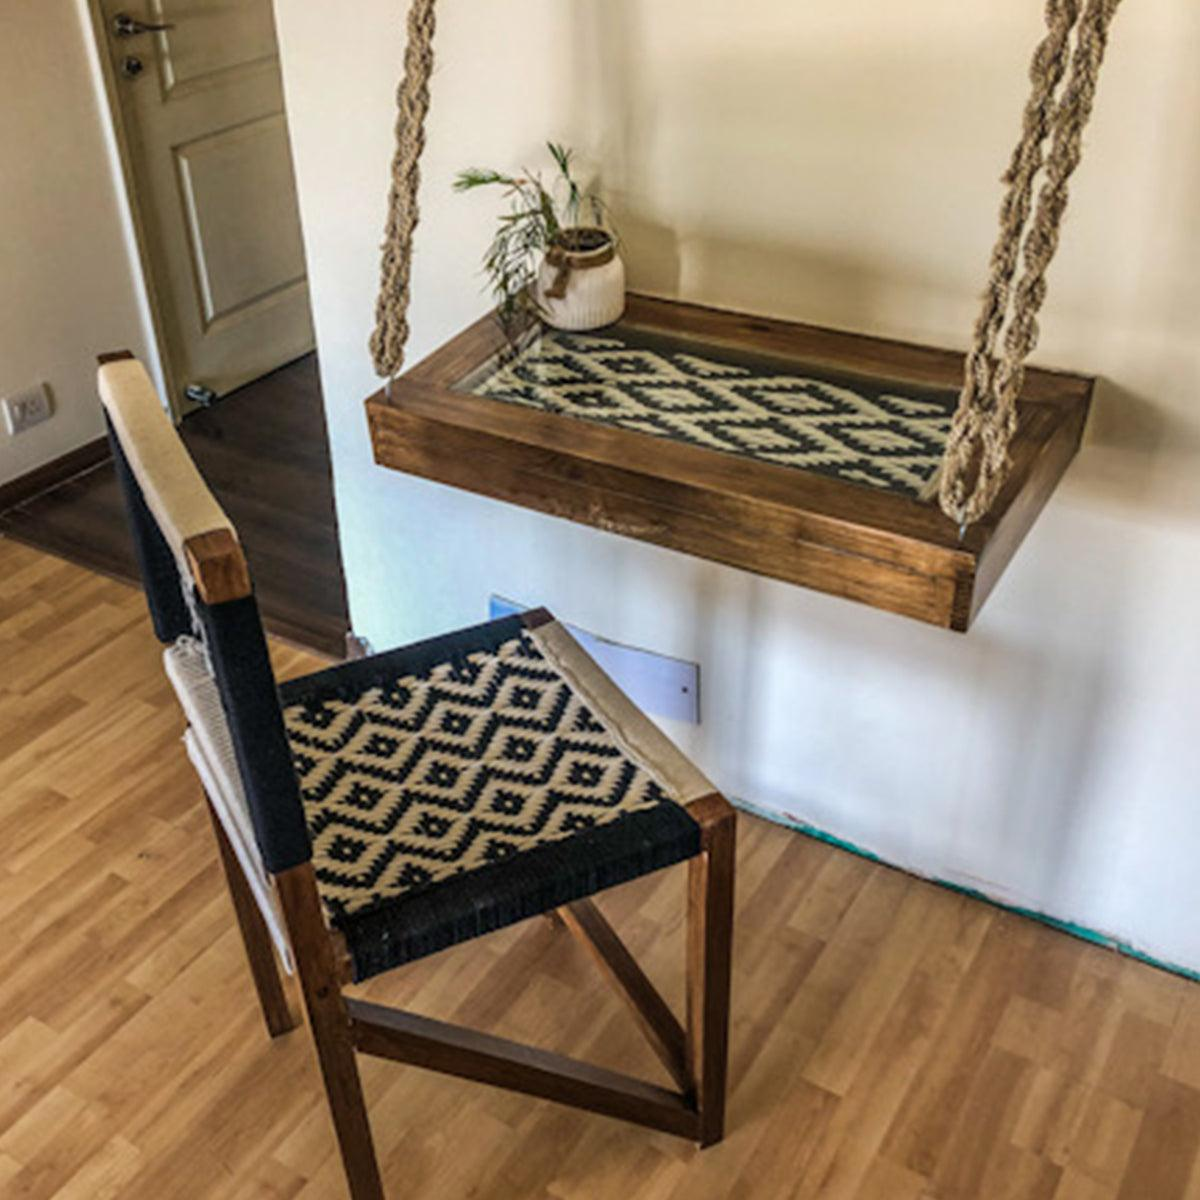 Rope Mounted Desk & Chair Set